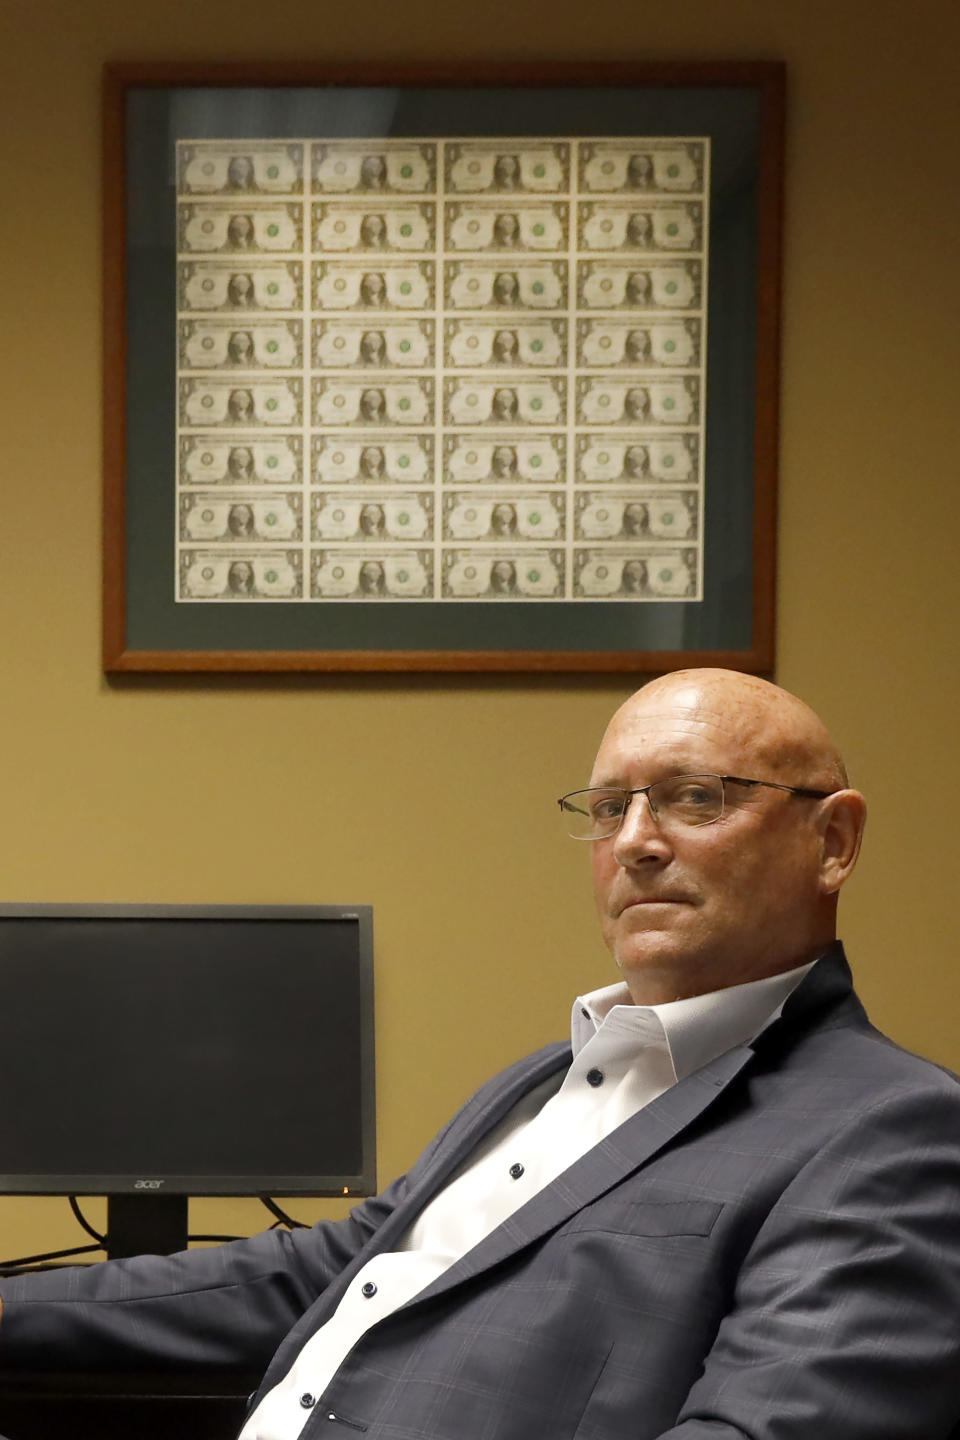 Brad Clark, President of Tompkins State Bank, poses for a portrait, Tuesday, June 15, 2021, in Galesburg, Ill. Clark says he has struggled to fill teller positions, a common theme among the local businesses his north-side branch serves and blames extended unemployment benefits that were part of the federal Covid response for encouraging workers to stay idle, and fears they are nudging inflation upward. (AP Photo/Shafkat Anowar)